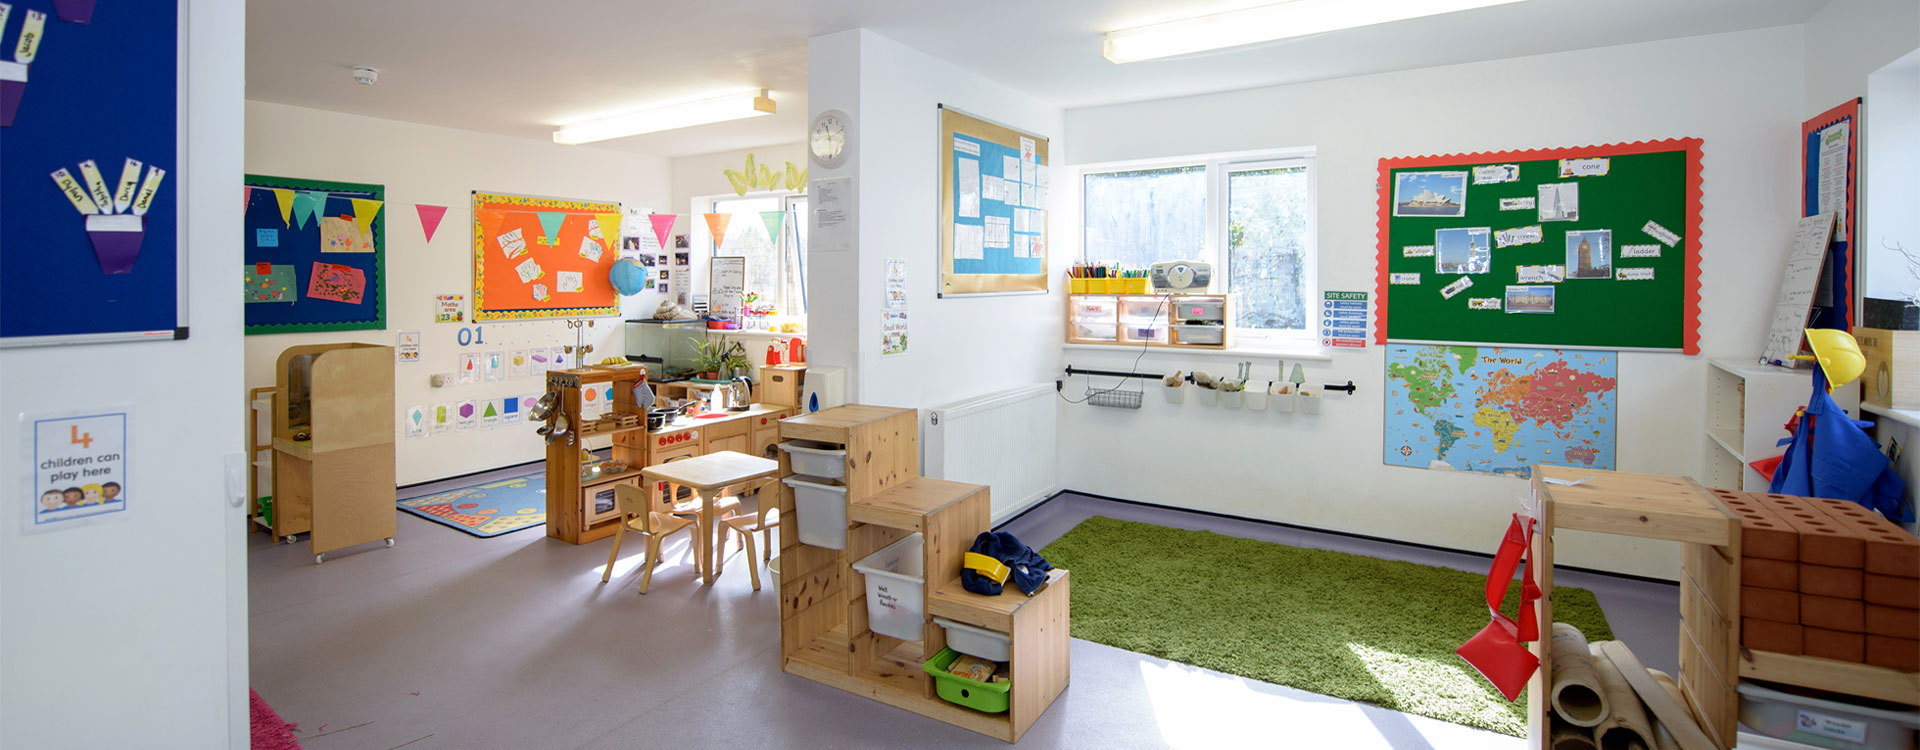 Little Learners Day Care - Squirrels Room